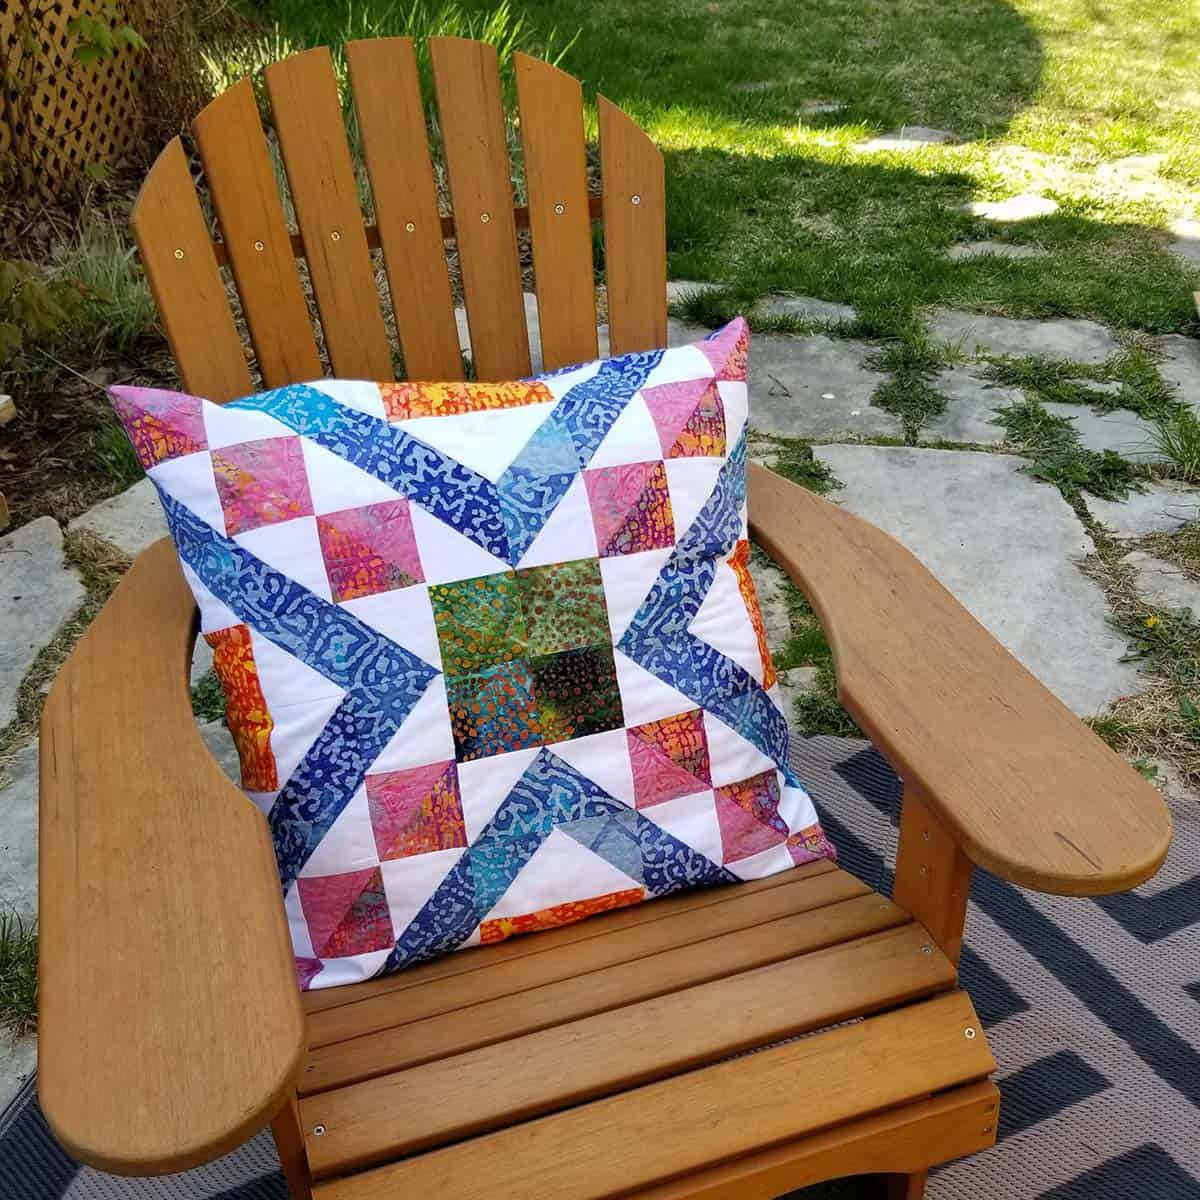 Lucie made a Affinity quilt pillow